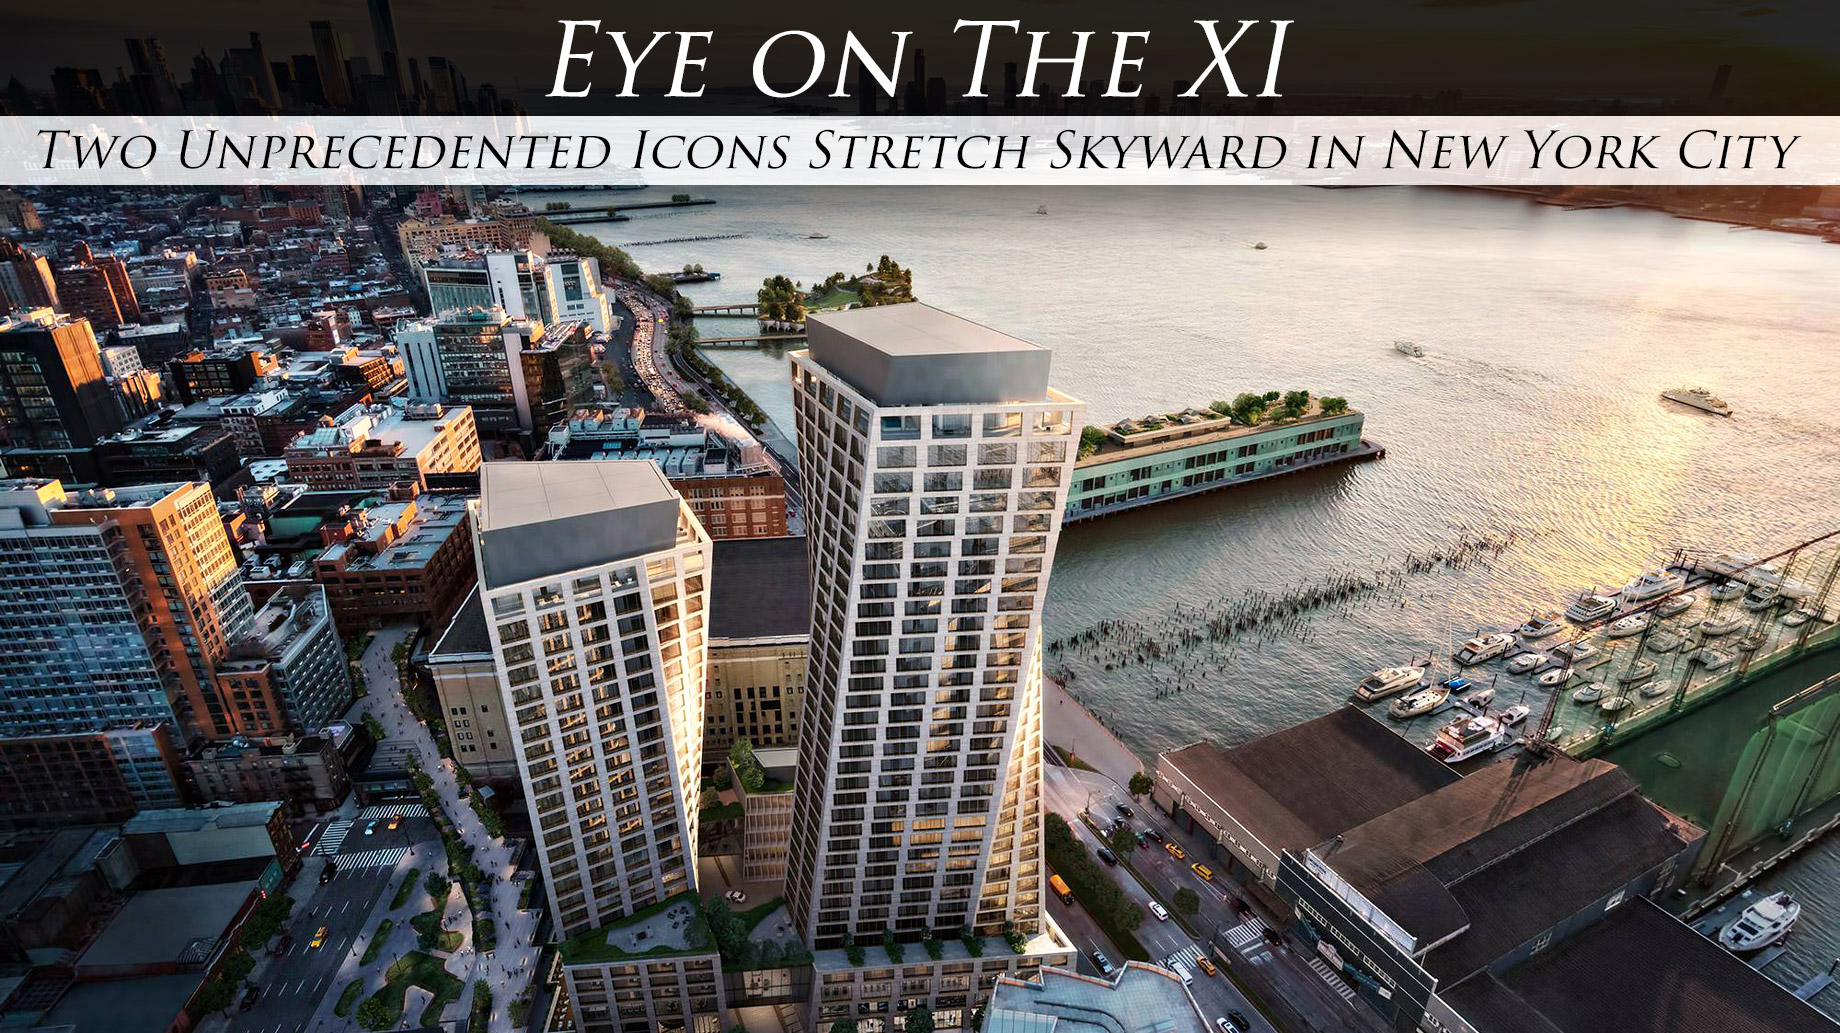 Eye on The XI - Two Unprecedented Icons Stretch Skyward in New York City